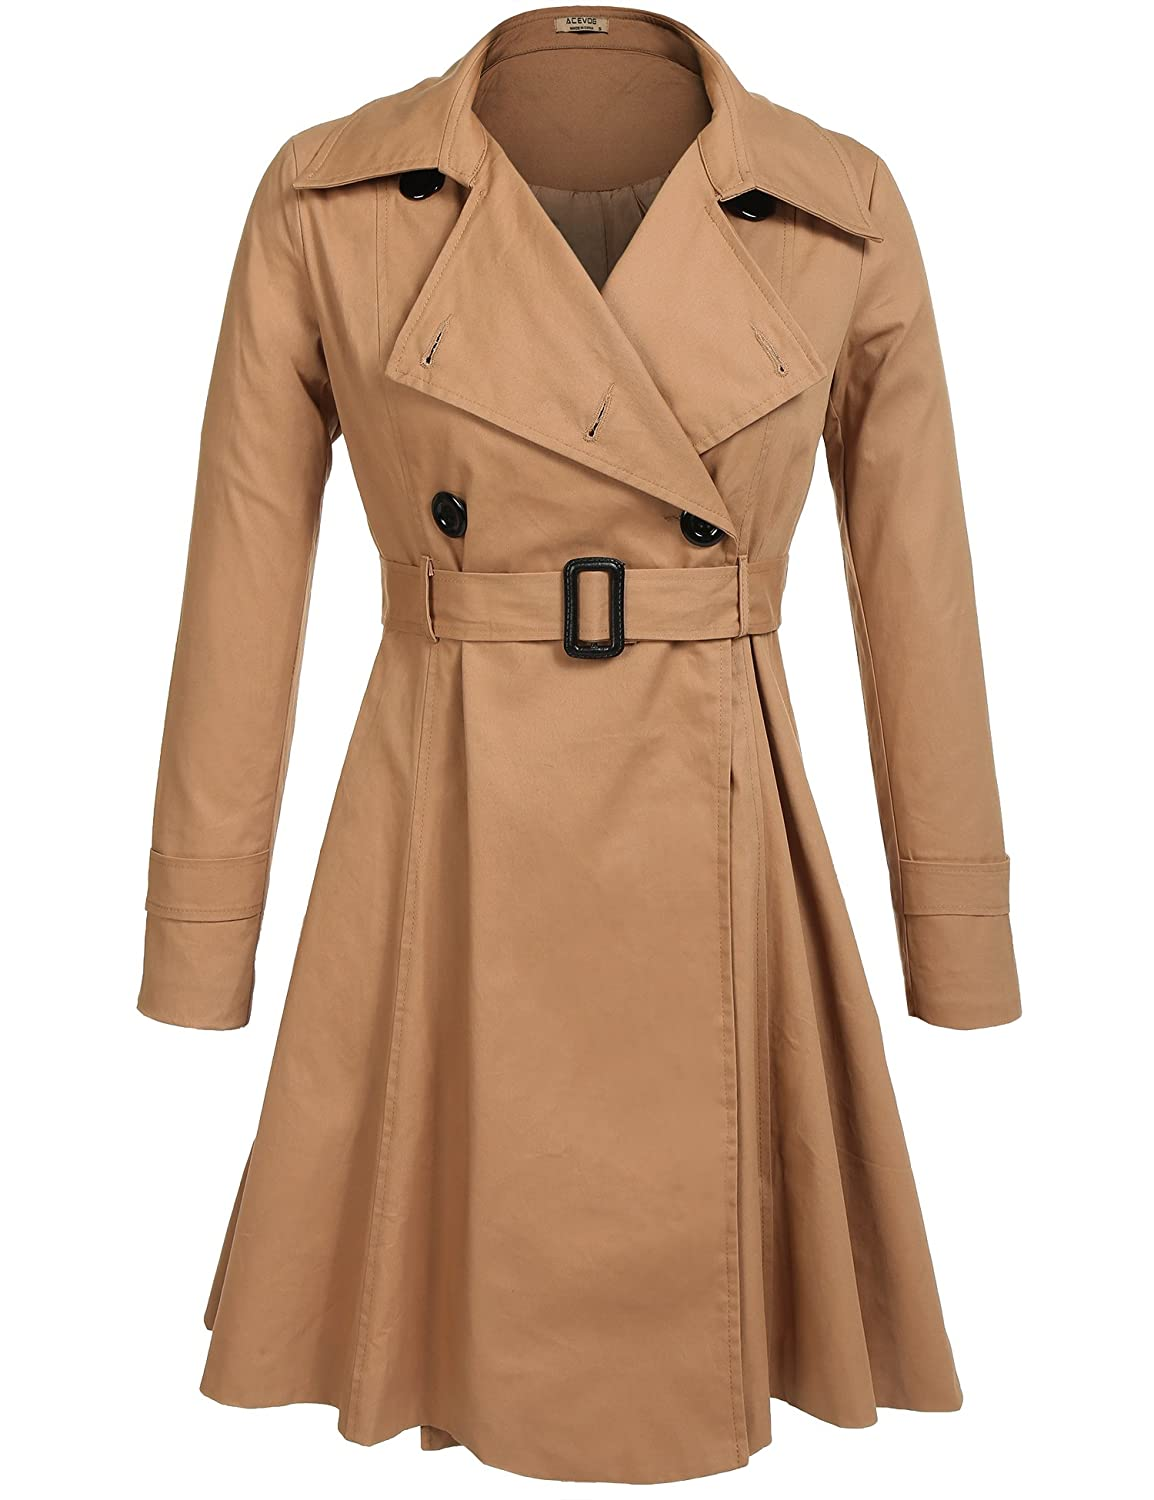 ACEVOG Women's Trench Coat Double Breasted Long Sleeve Jackets with Belt *AVH021863